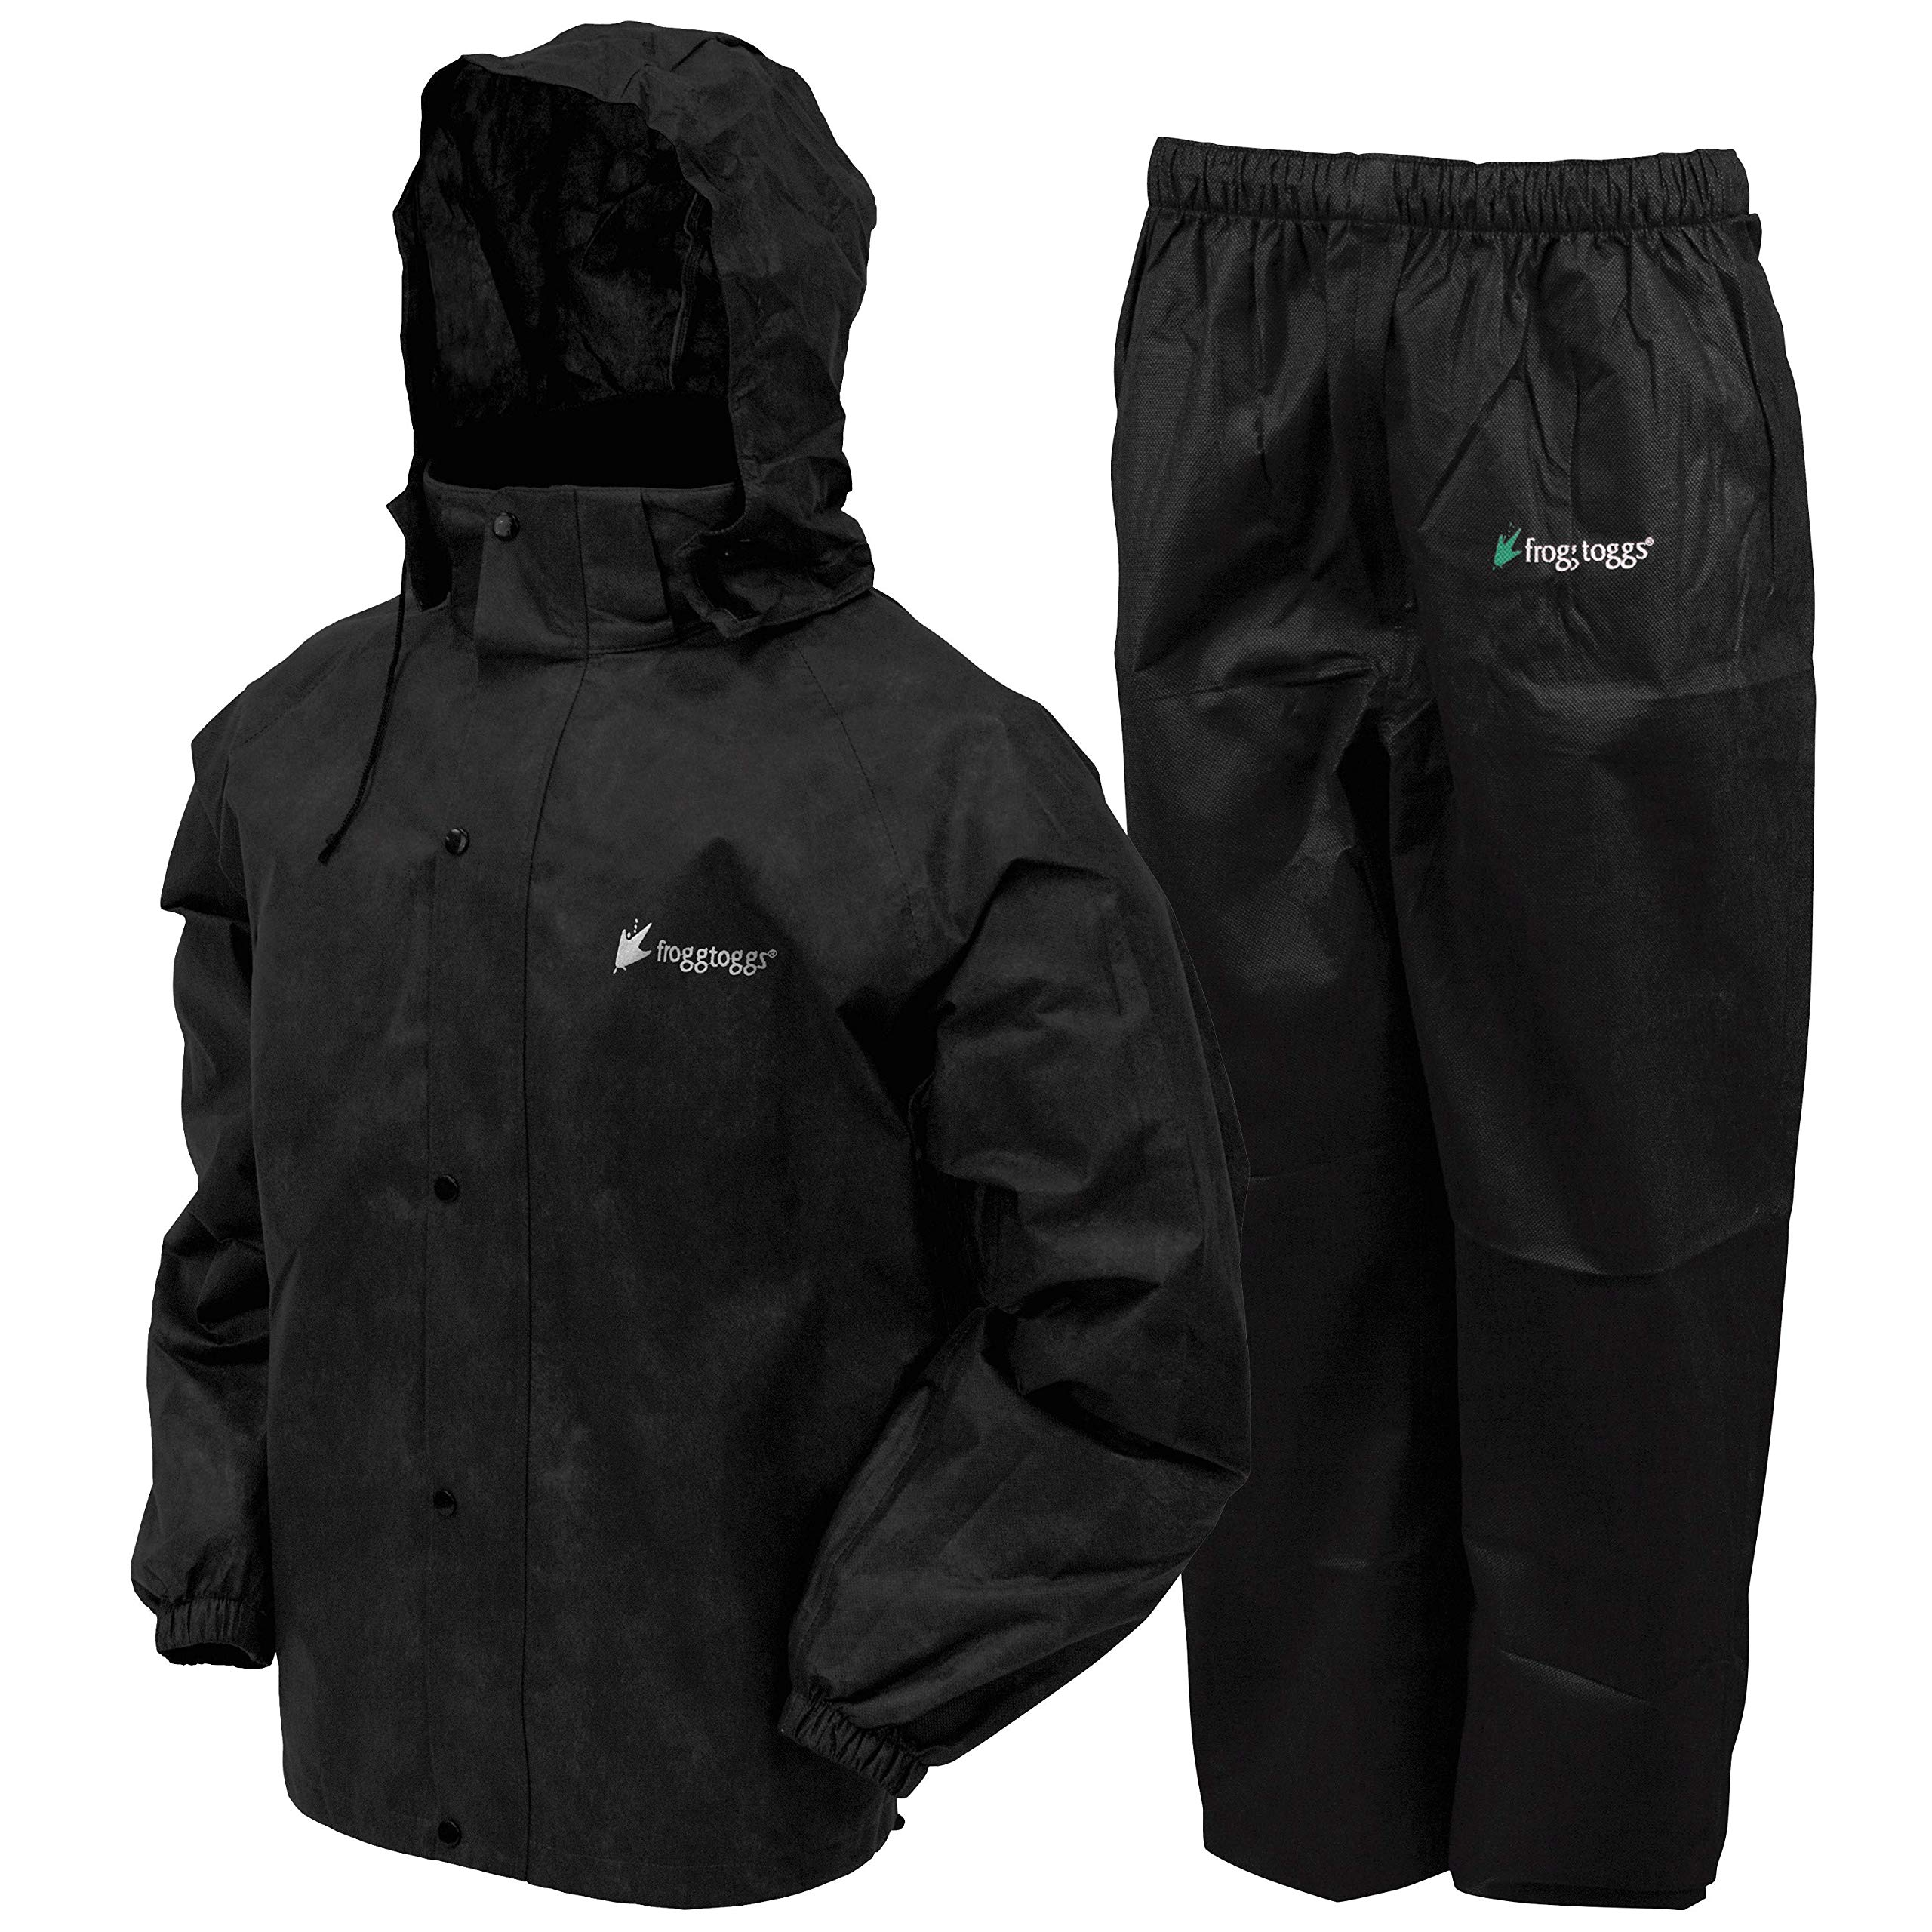 Frogg Toggs AS1310-01XL All Sport Rain Suit Black, Size X-Large by Frogg Toggs